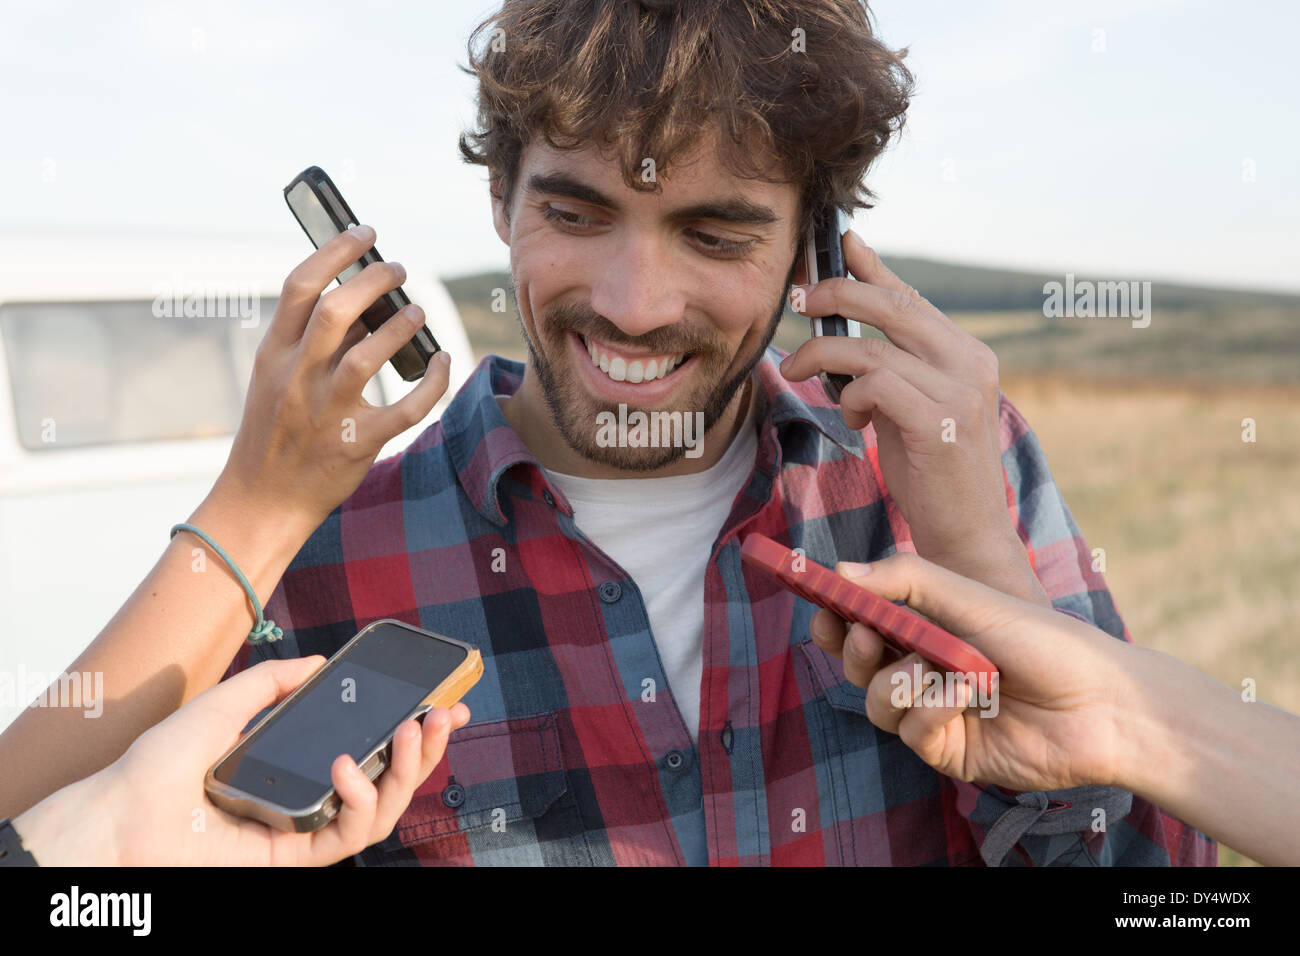 Young man on cell phone with hands holding smartphones - Stock Image